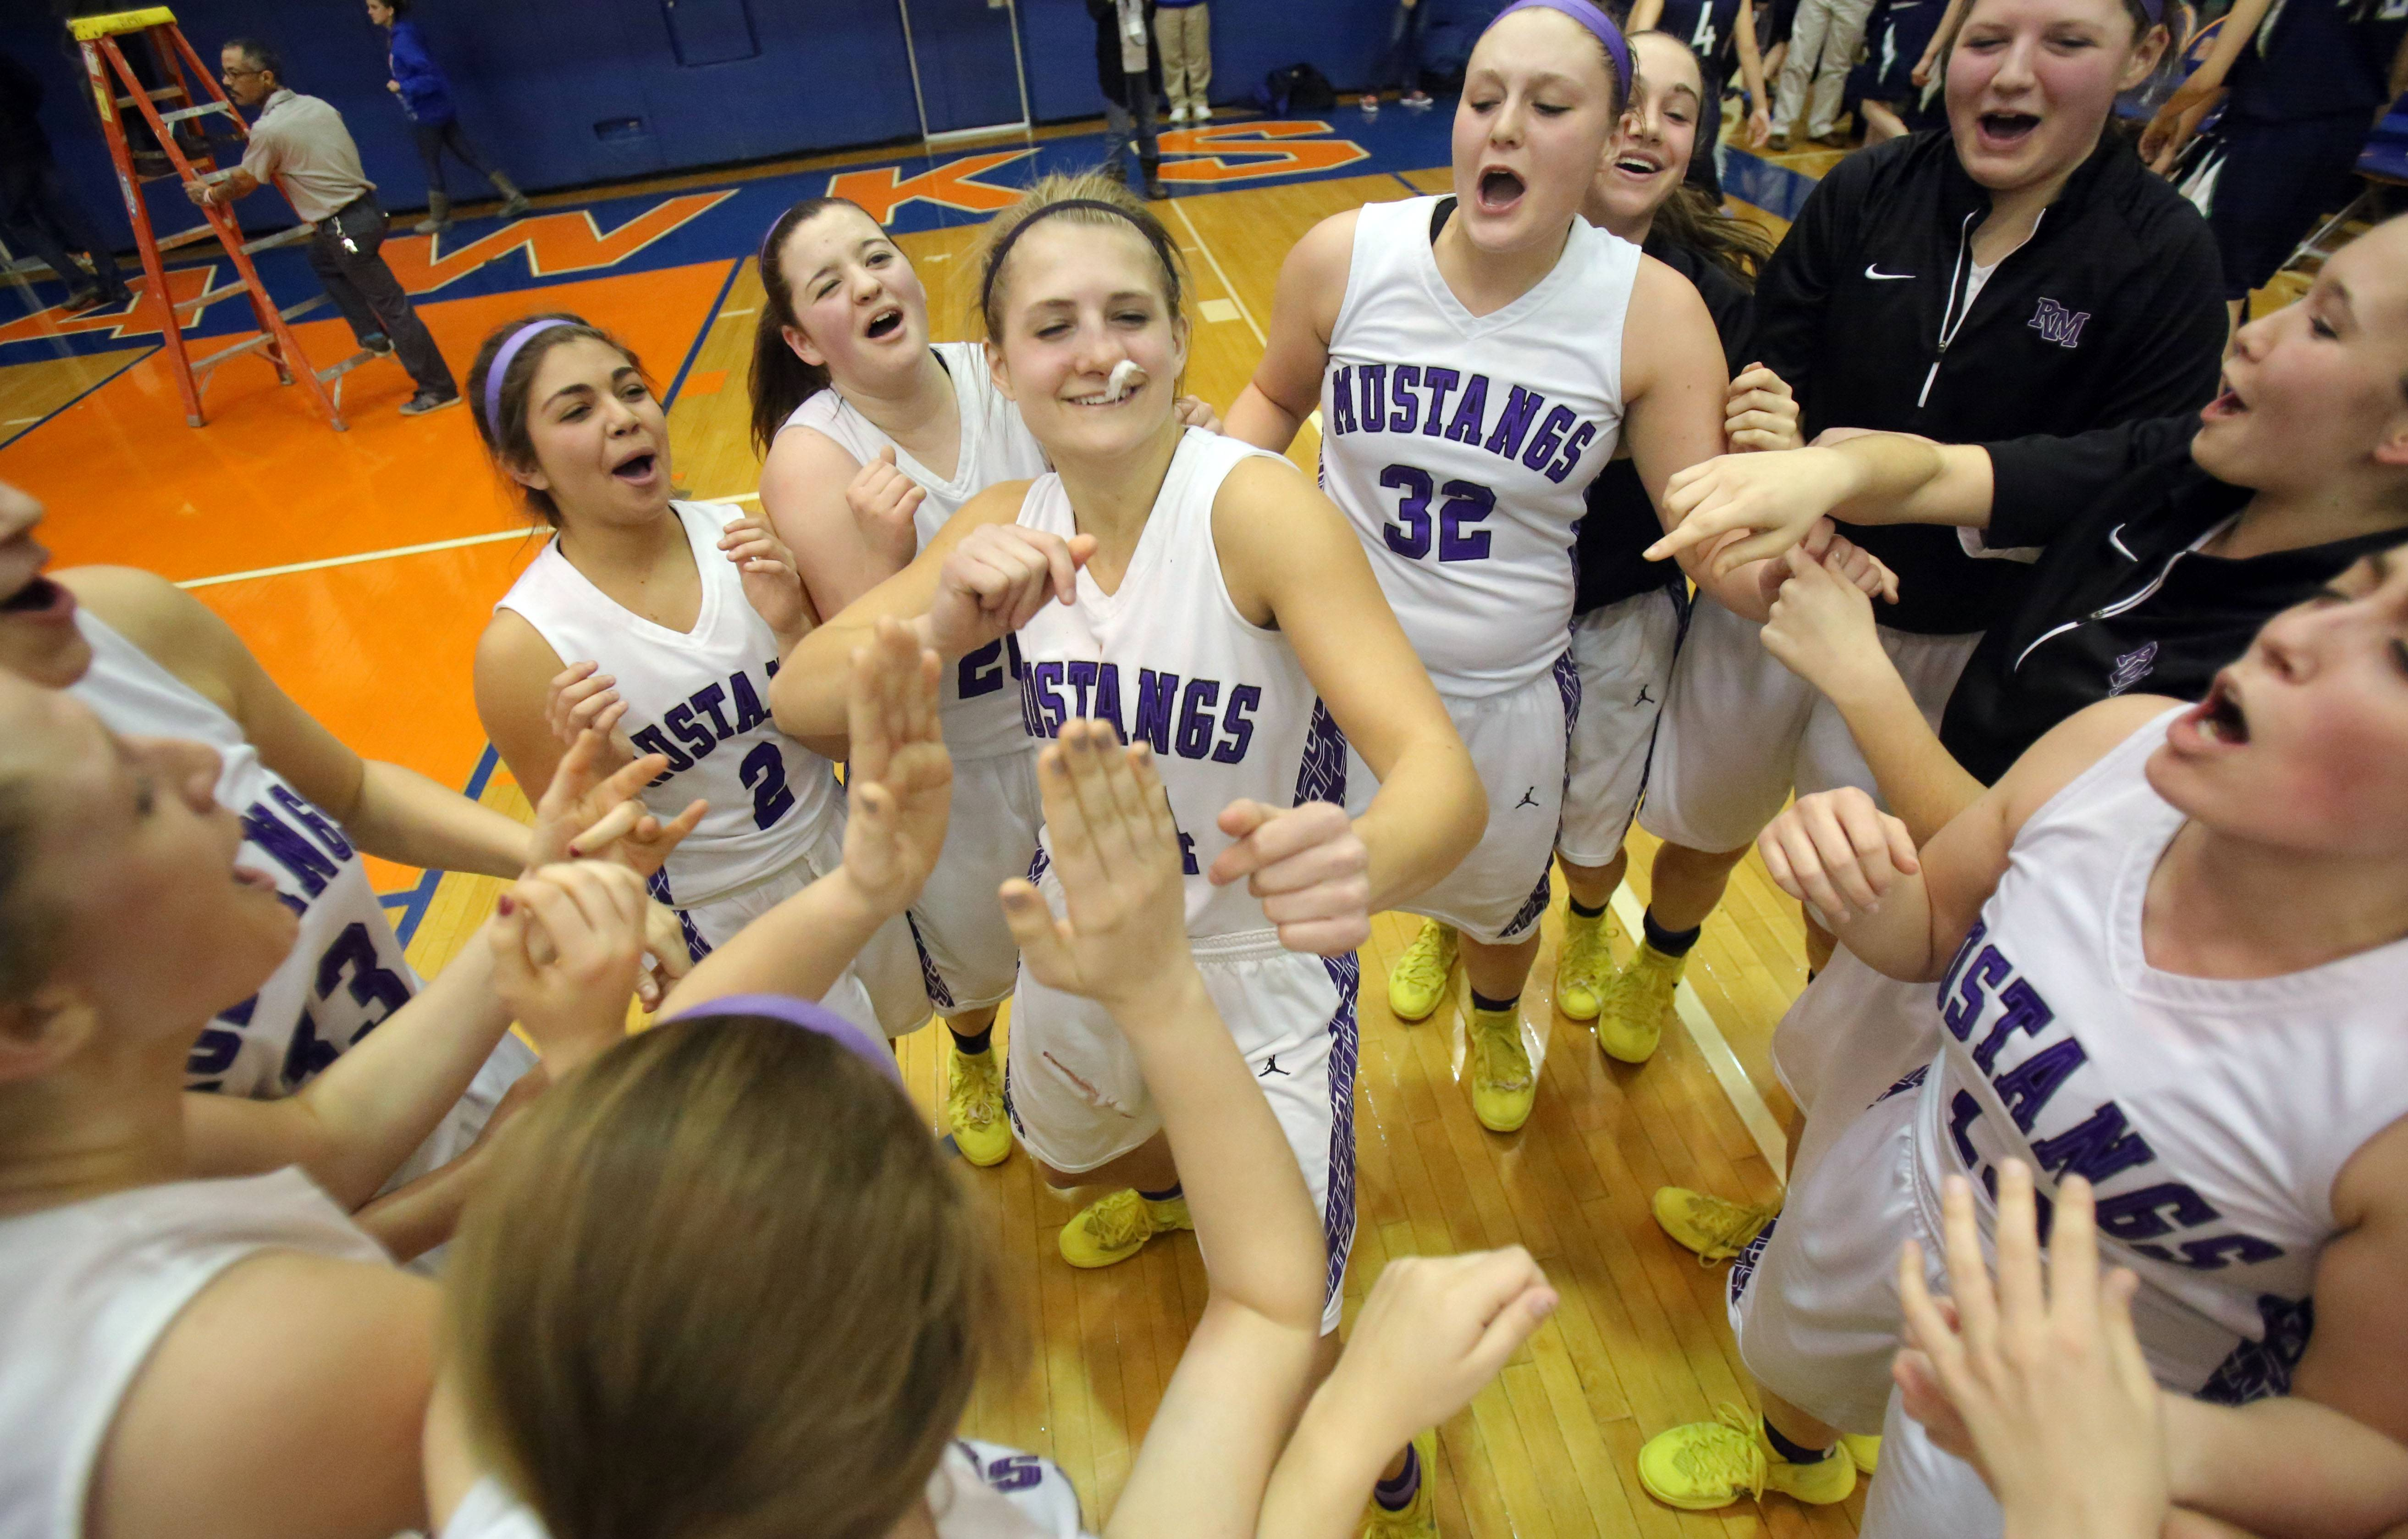 Rolling Meadows' Alexis Glasgow dances, showing off her injured nose after the game.